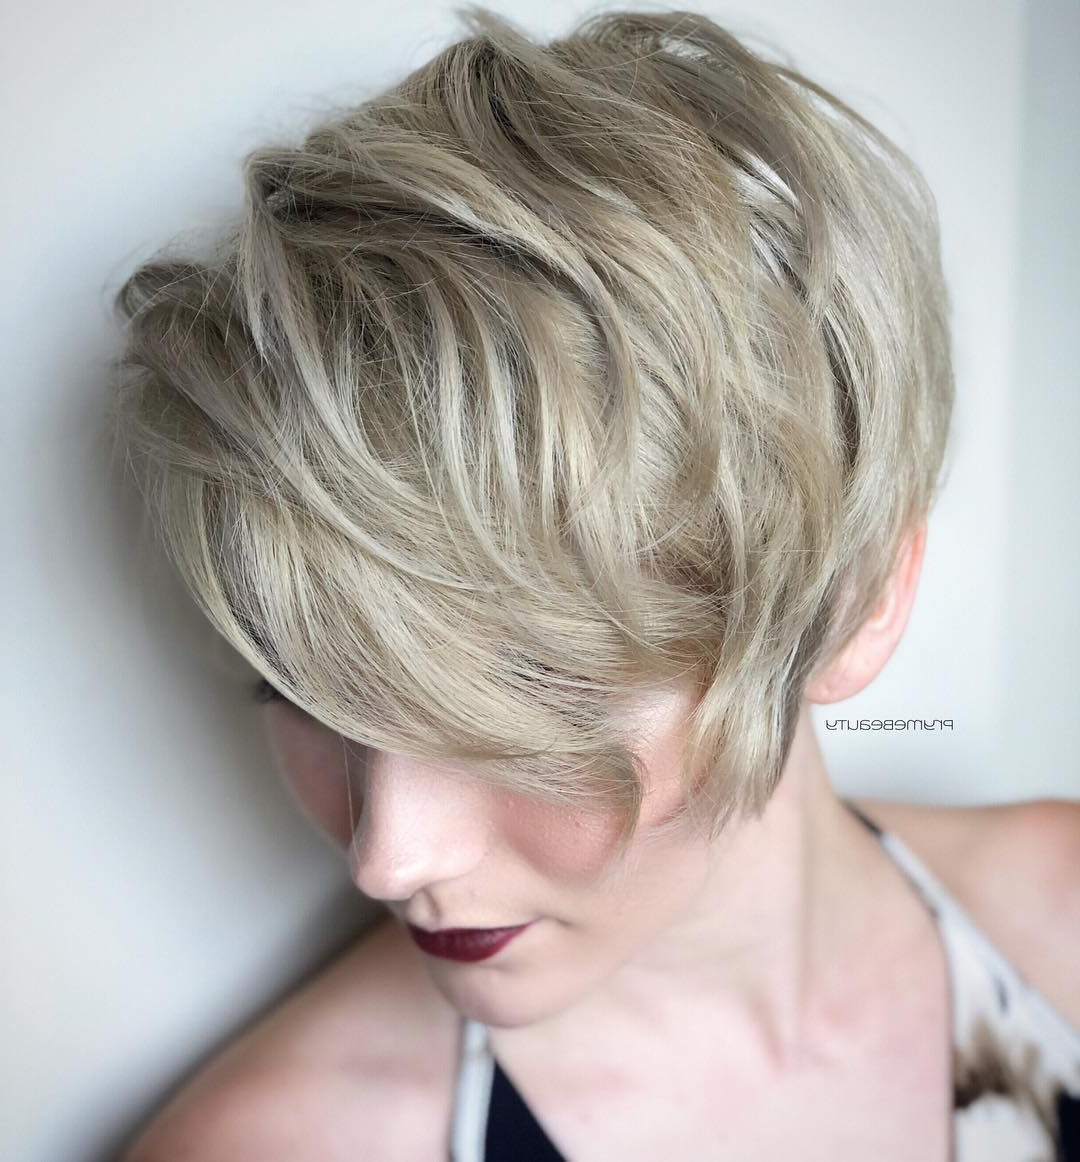 Top 10 Trendy, Low Maintenance Short Layered Hairstyles For 2018 2019 Intended For Low Maintenance Short Hairstyles (View 2 of 25)